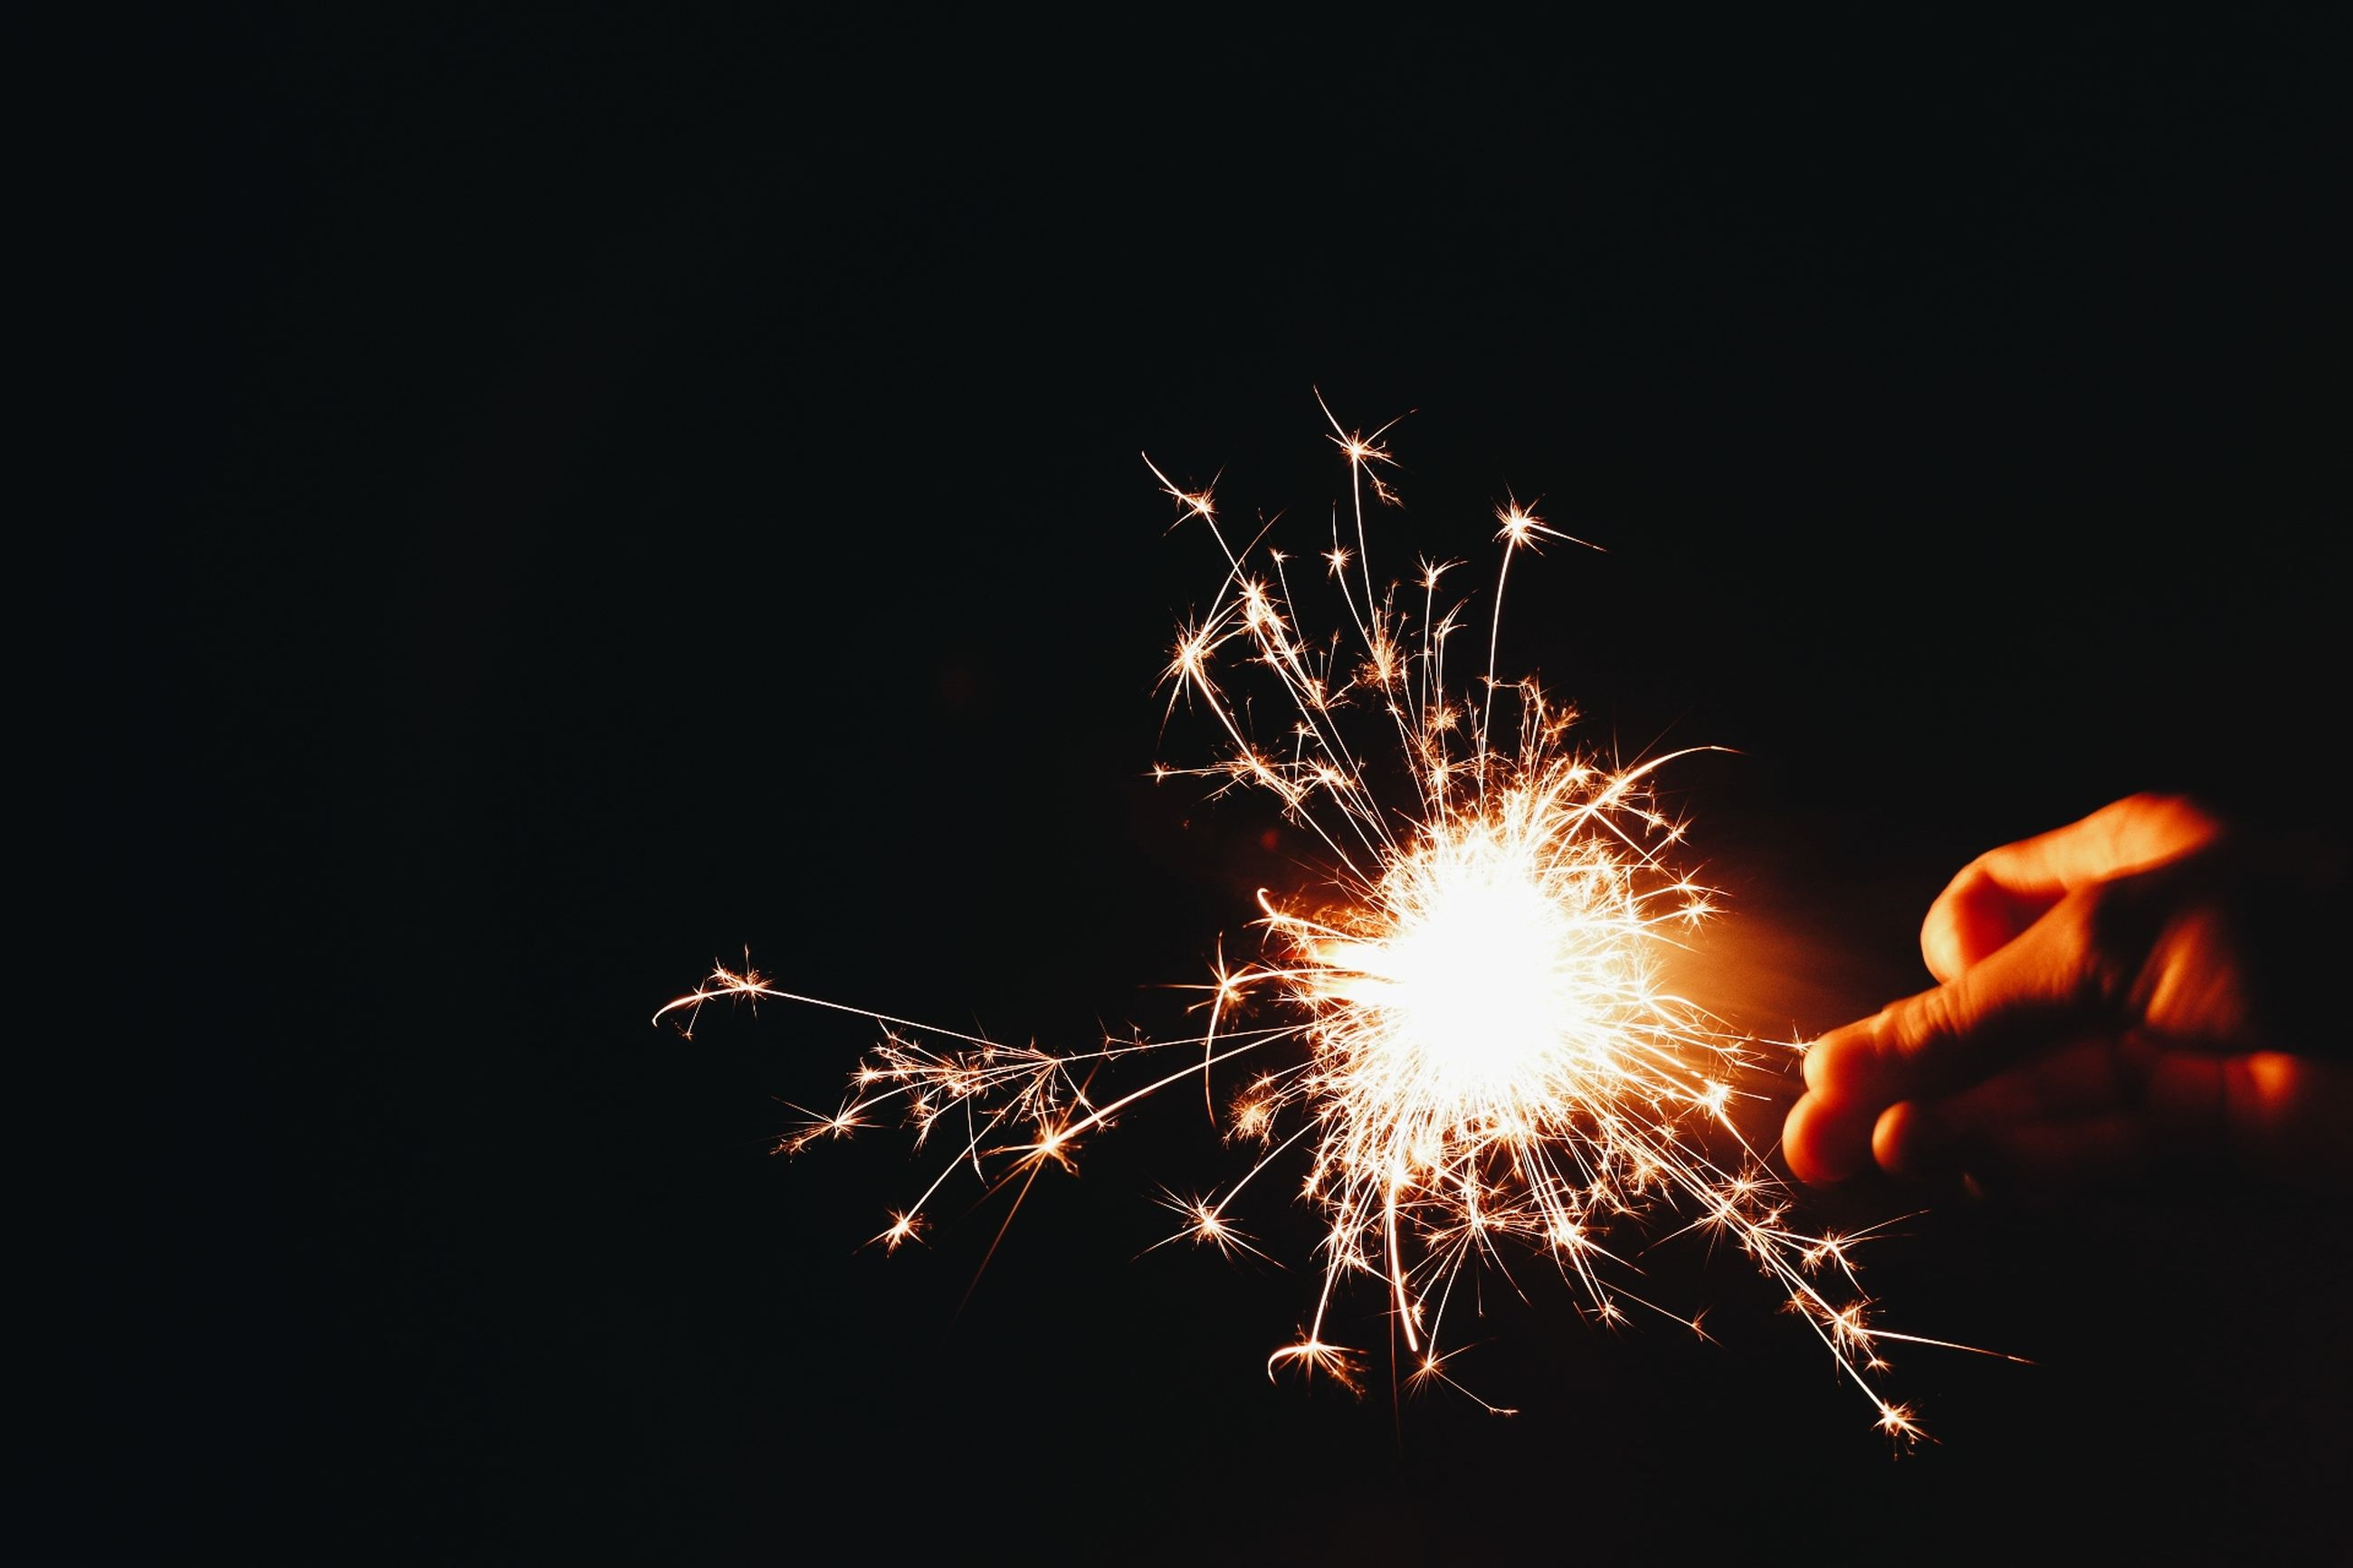 night, human hand, real people, one person, celebration, long exposure, sparks, firework - man made object, leisure activity, holding, sparkler, firework display, human body part, illuminated, black background, outdoors, firework, wire wool, people